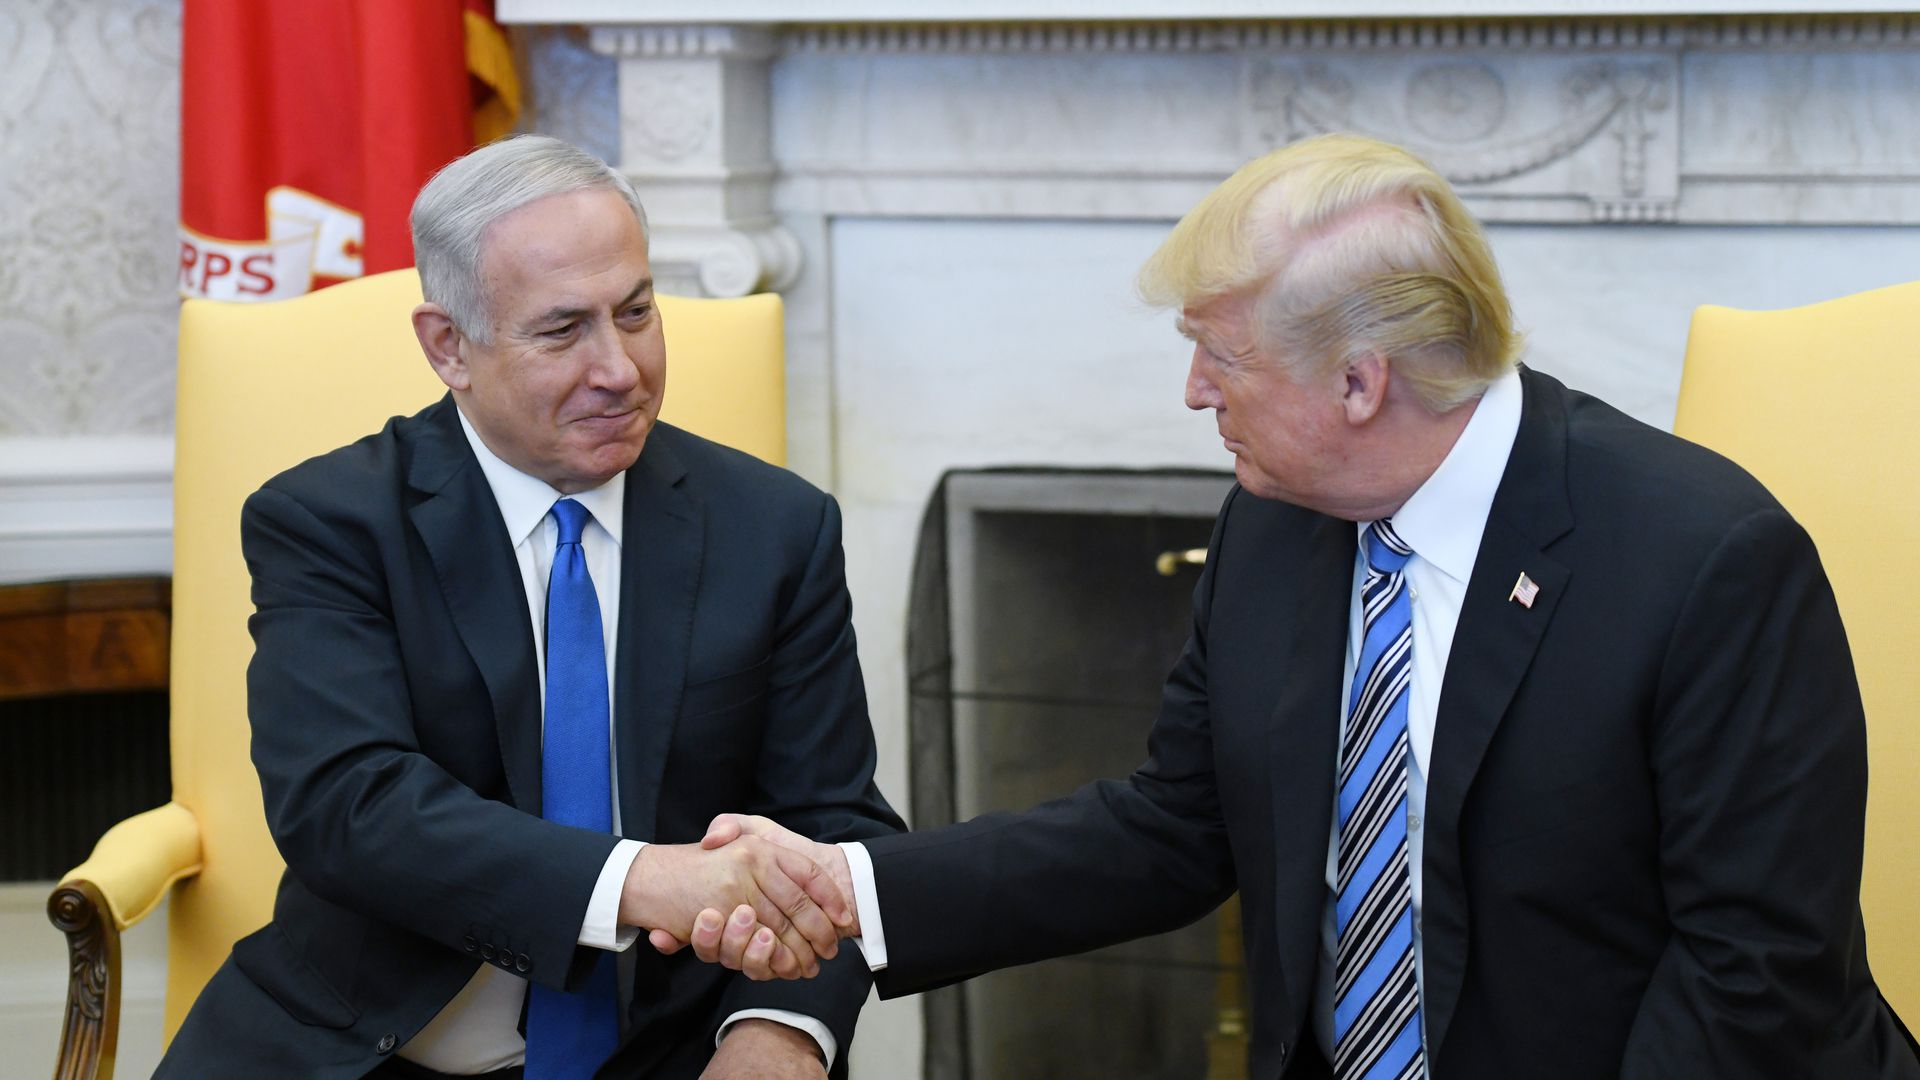 Trump shaking hands with Benjamin Netanyahu